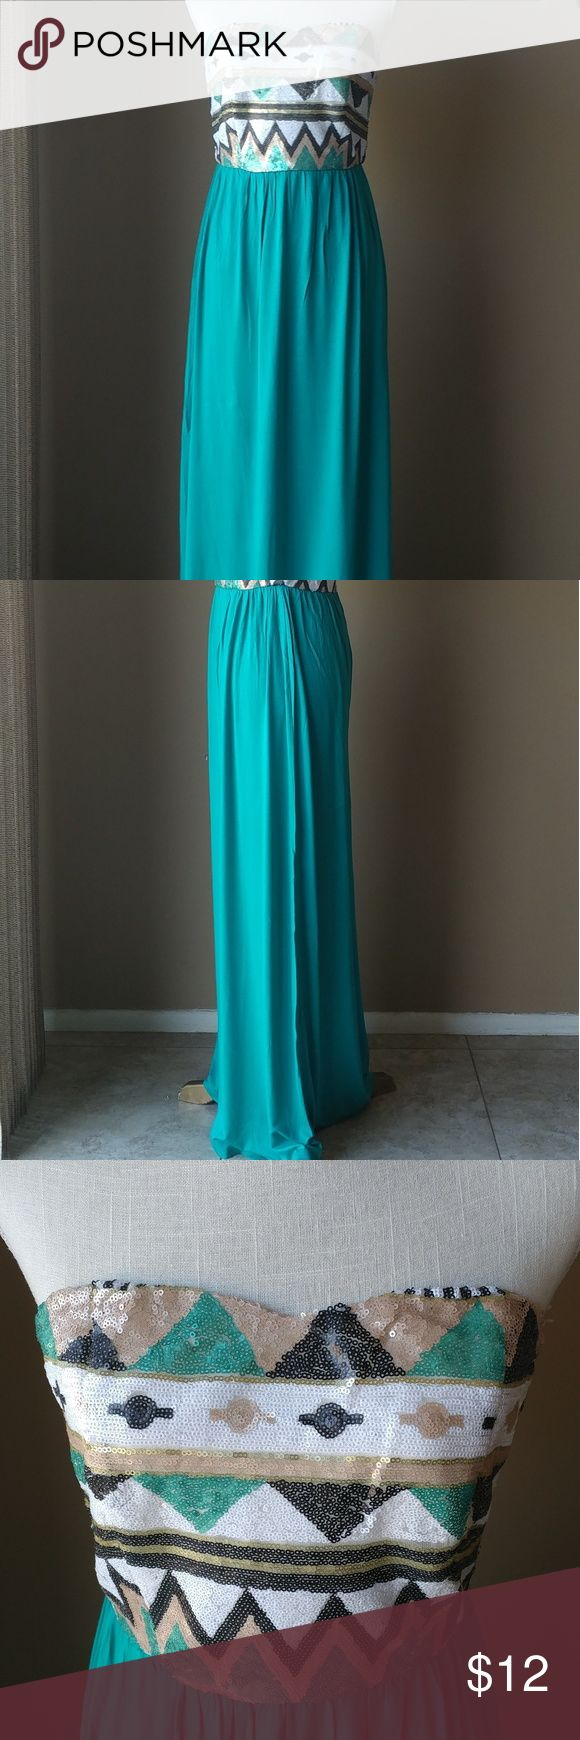 Bo Bel Turquoise Maxi Dress Turquoise maxi dress with sequins on top and zipper back. New without tags. Bo Bel Dresses Maxi